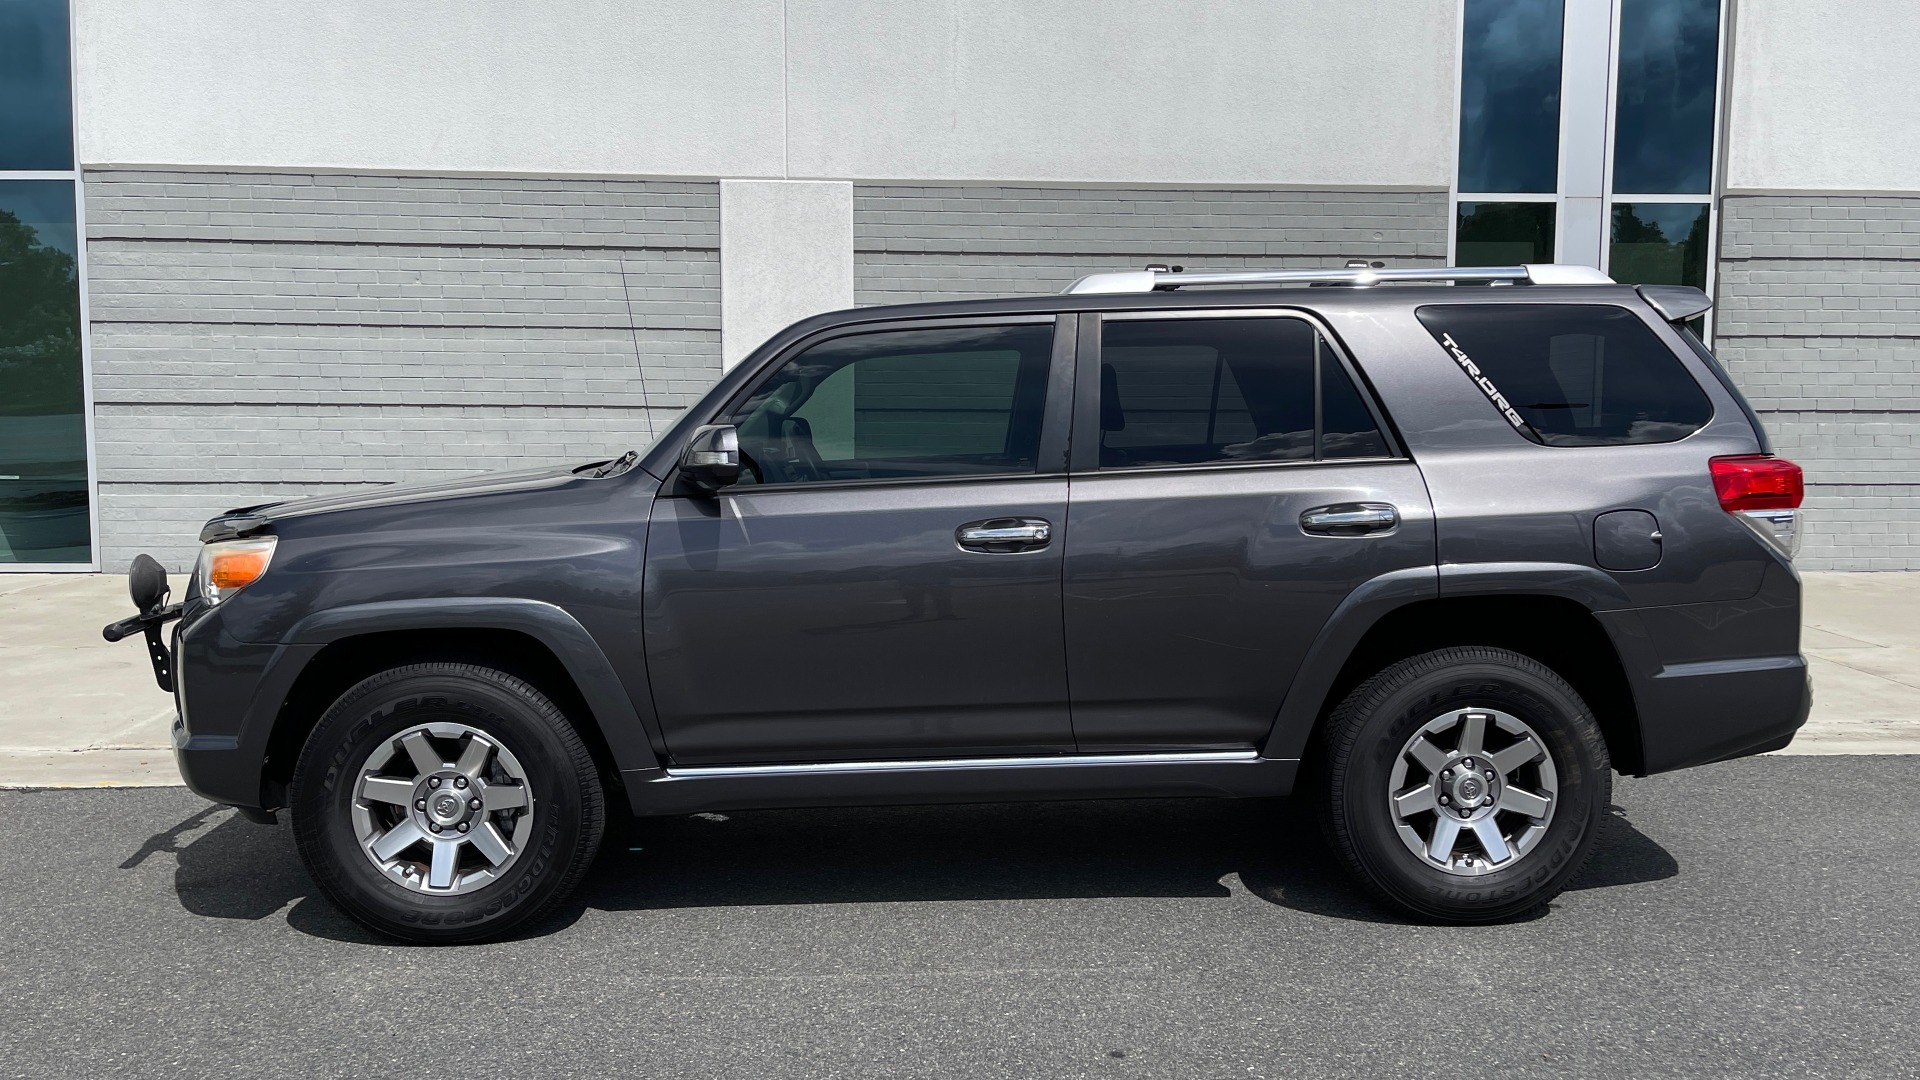 Used 2011 Toyota 4RUNNER SR5 4X4 V6 / 5-SPD AUTO / SUNROOF / POWER FRONT SEATS for sale $19,999 at Formula Imports in Charlotte NC 28227 3